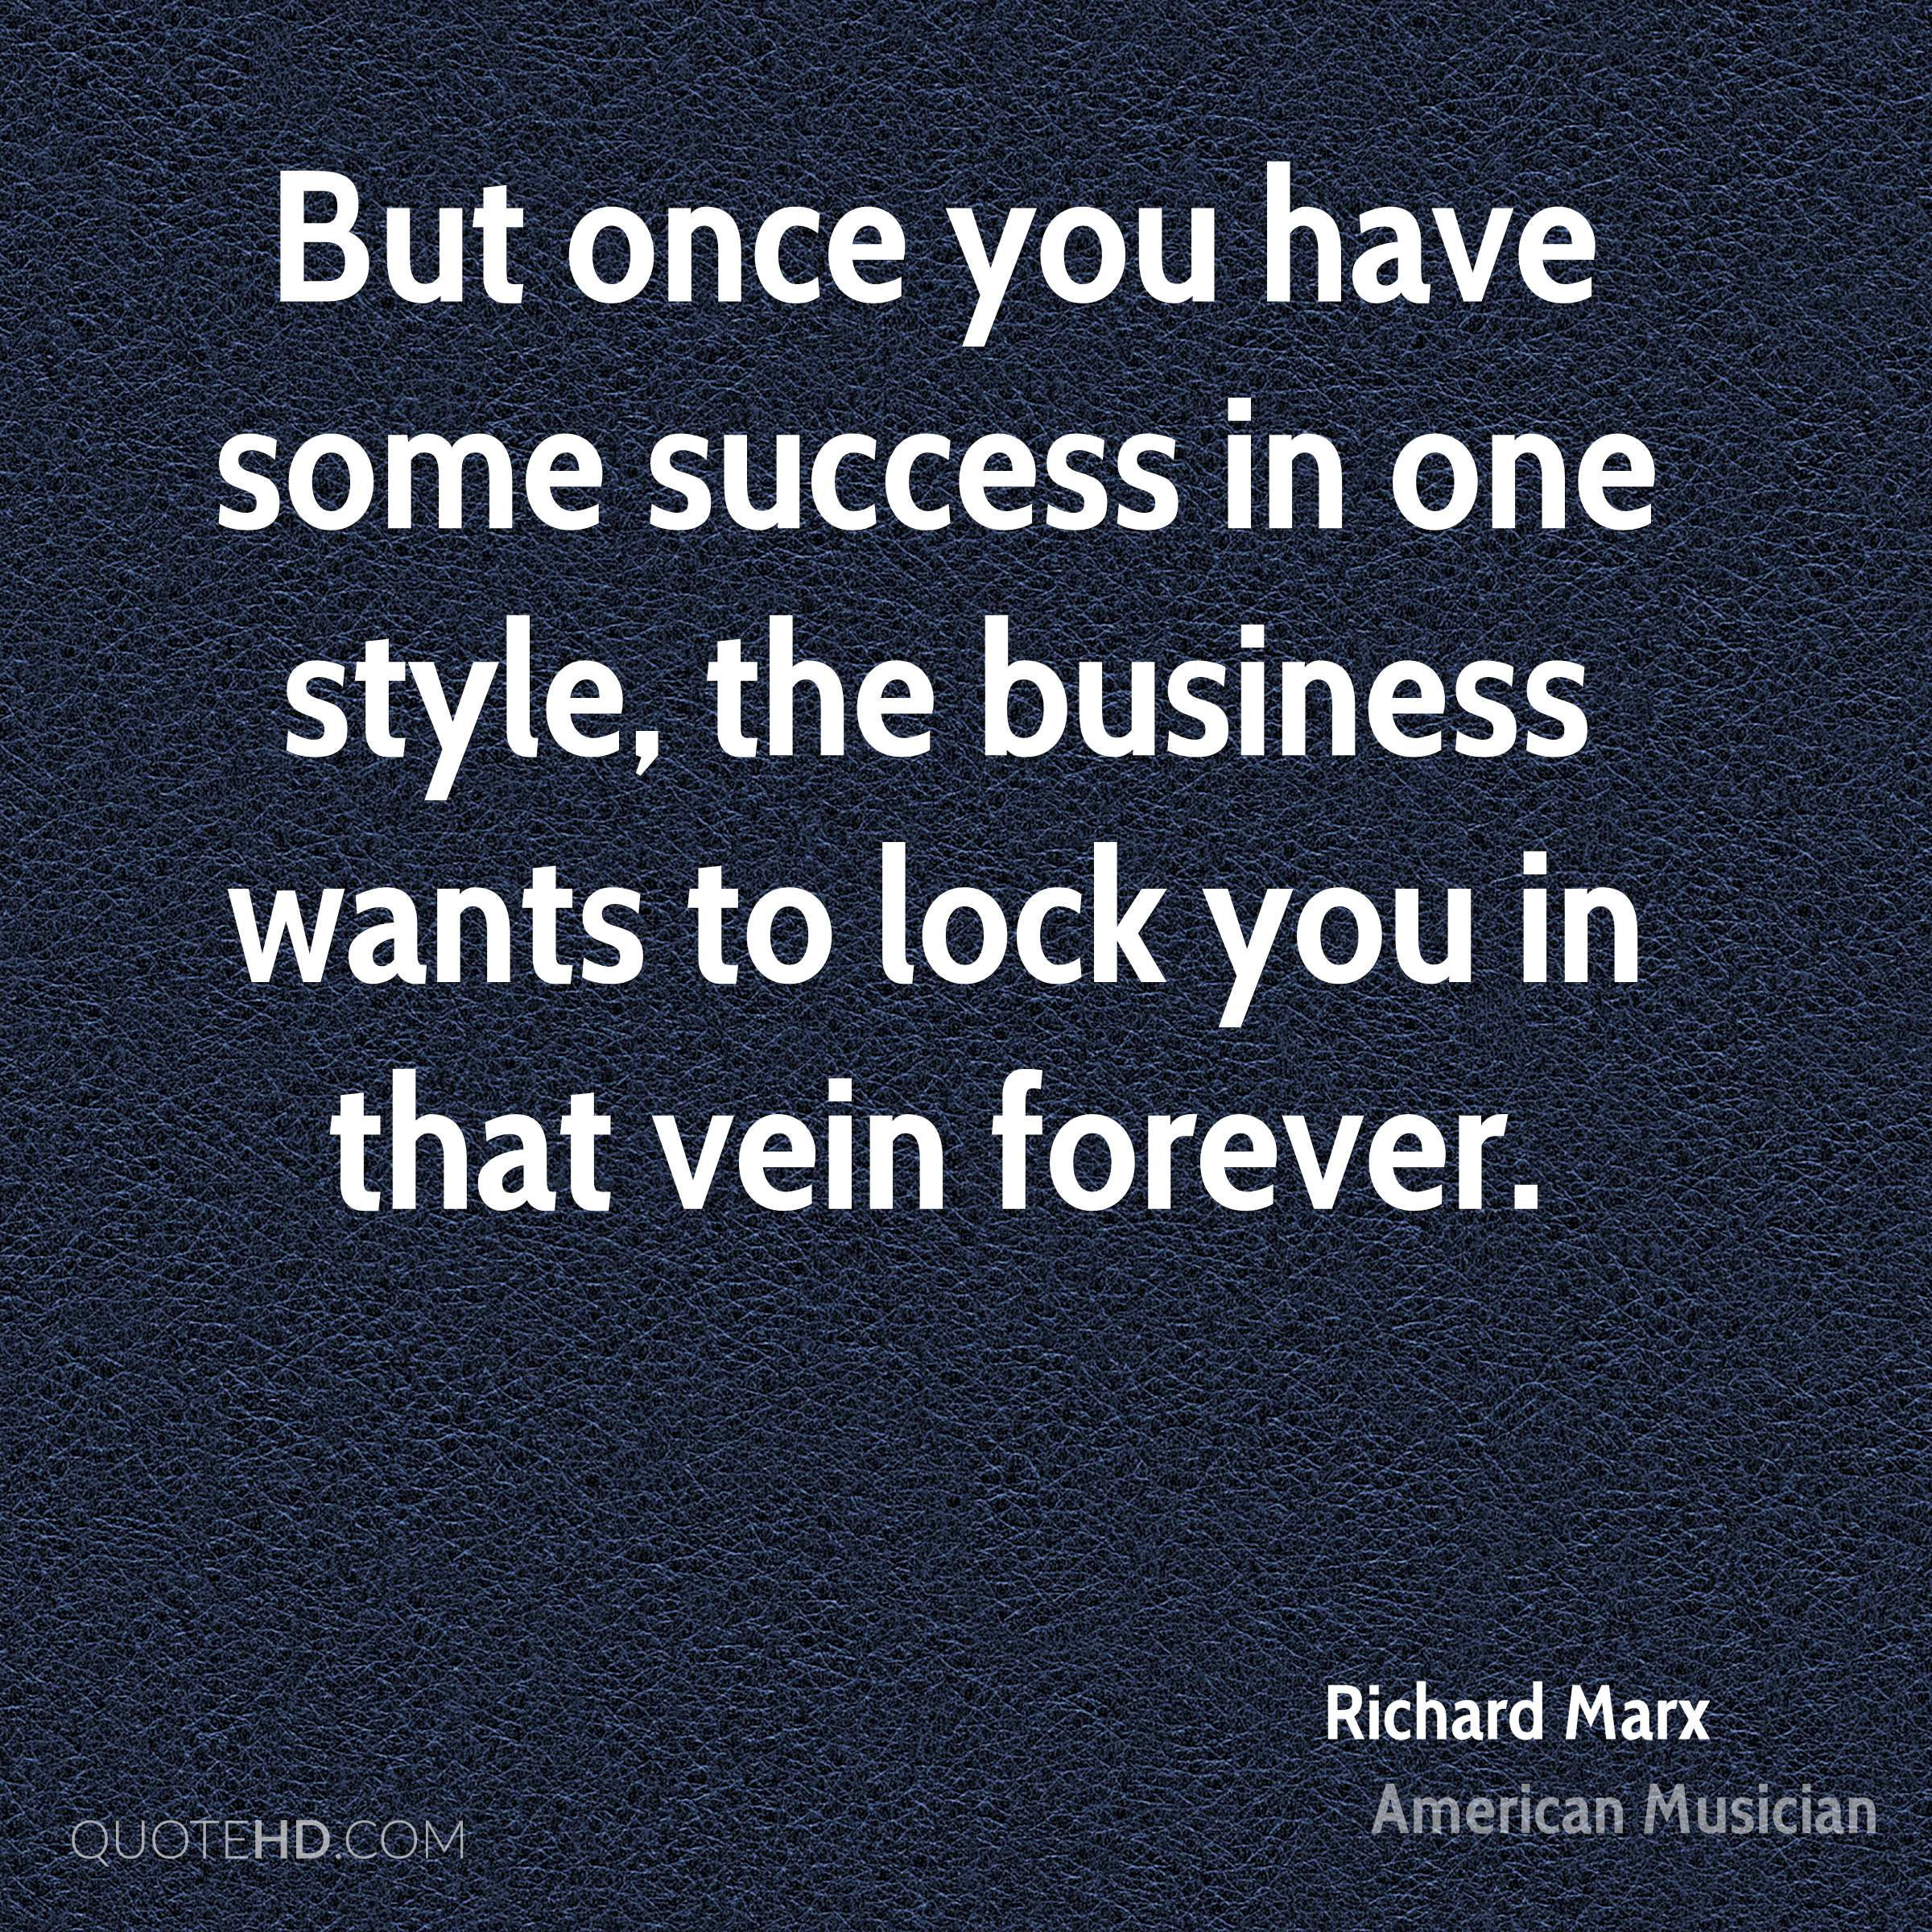 But once you have some success in one style, the business wants to lock you in that vein forever.